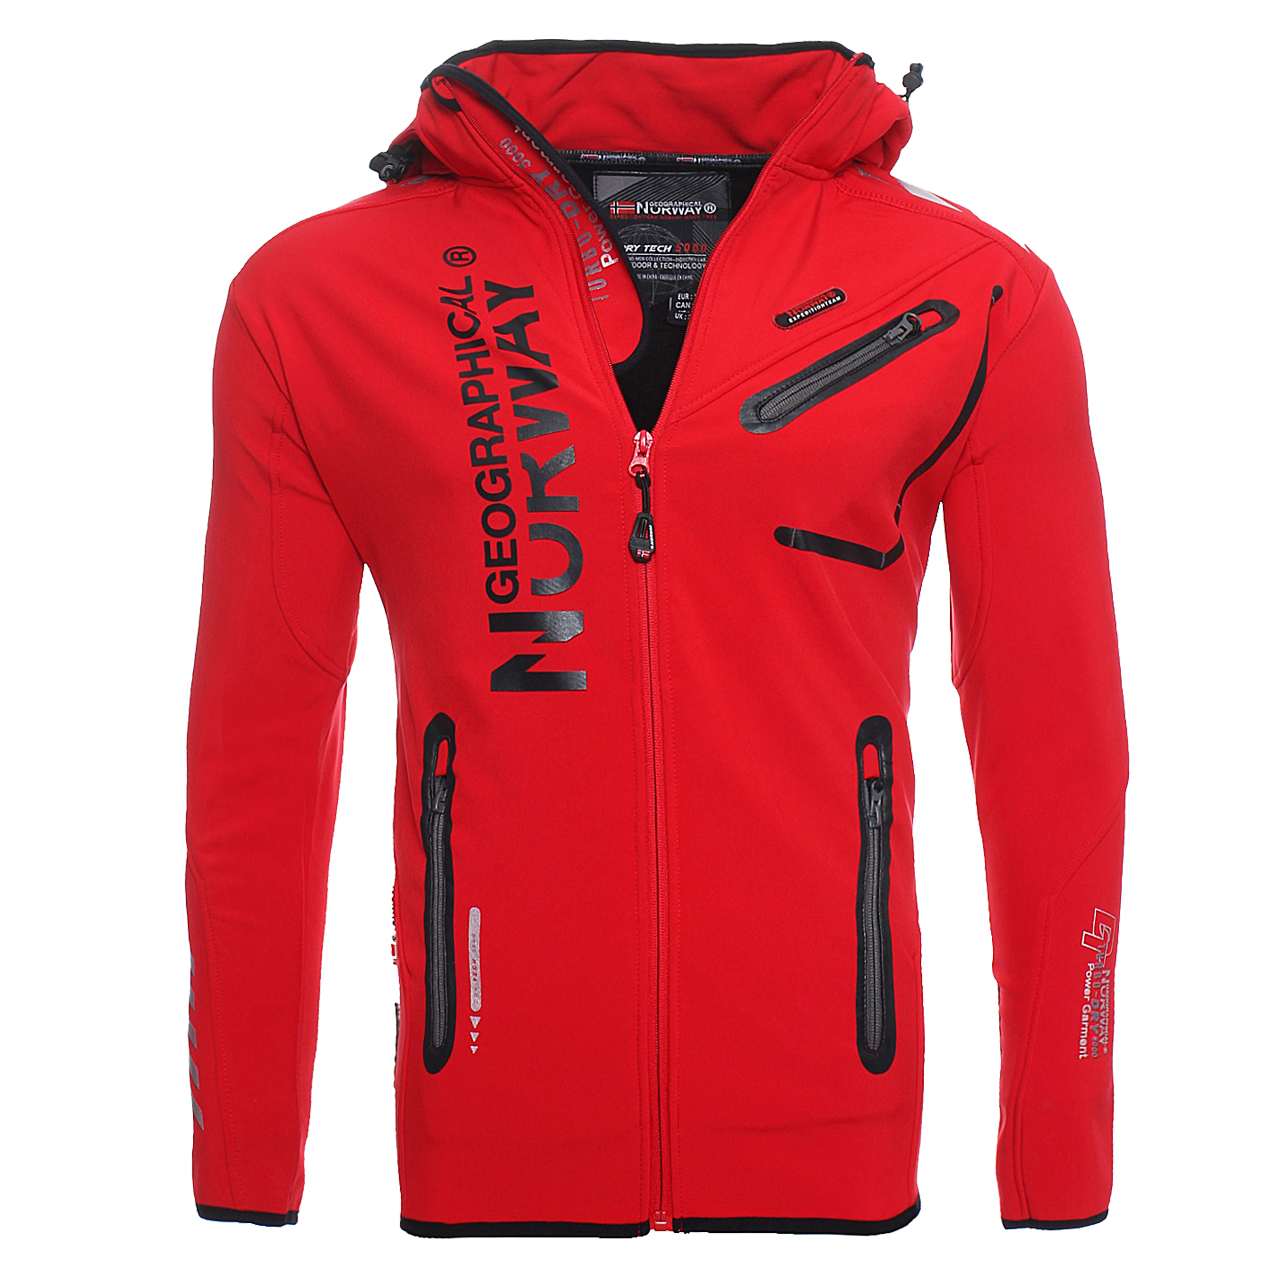 Geographical-Norway-Richier-Hommes-Softshell-Veste-Outdoor-Fonction-Veste